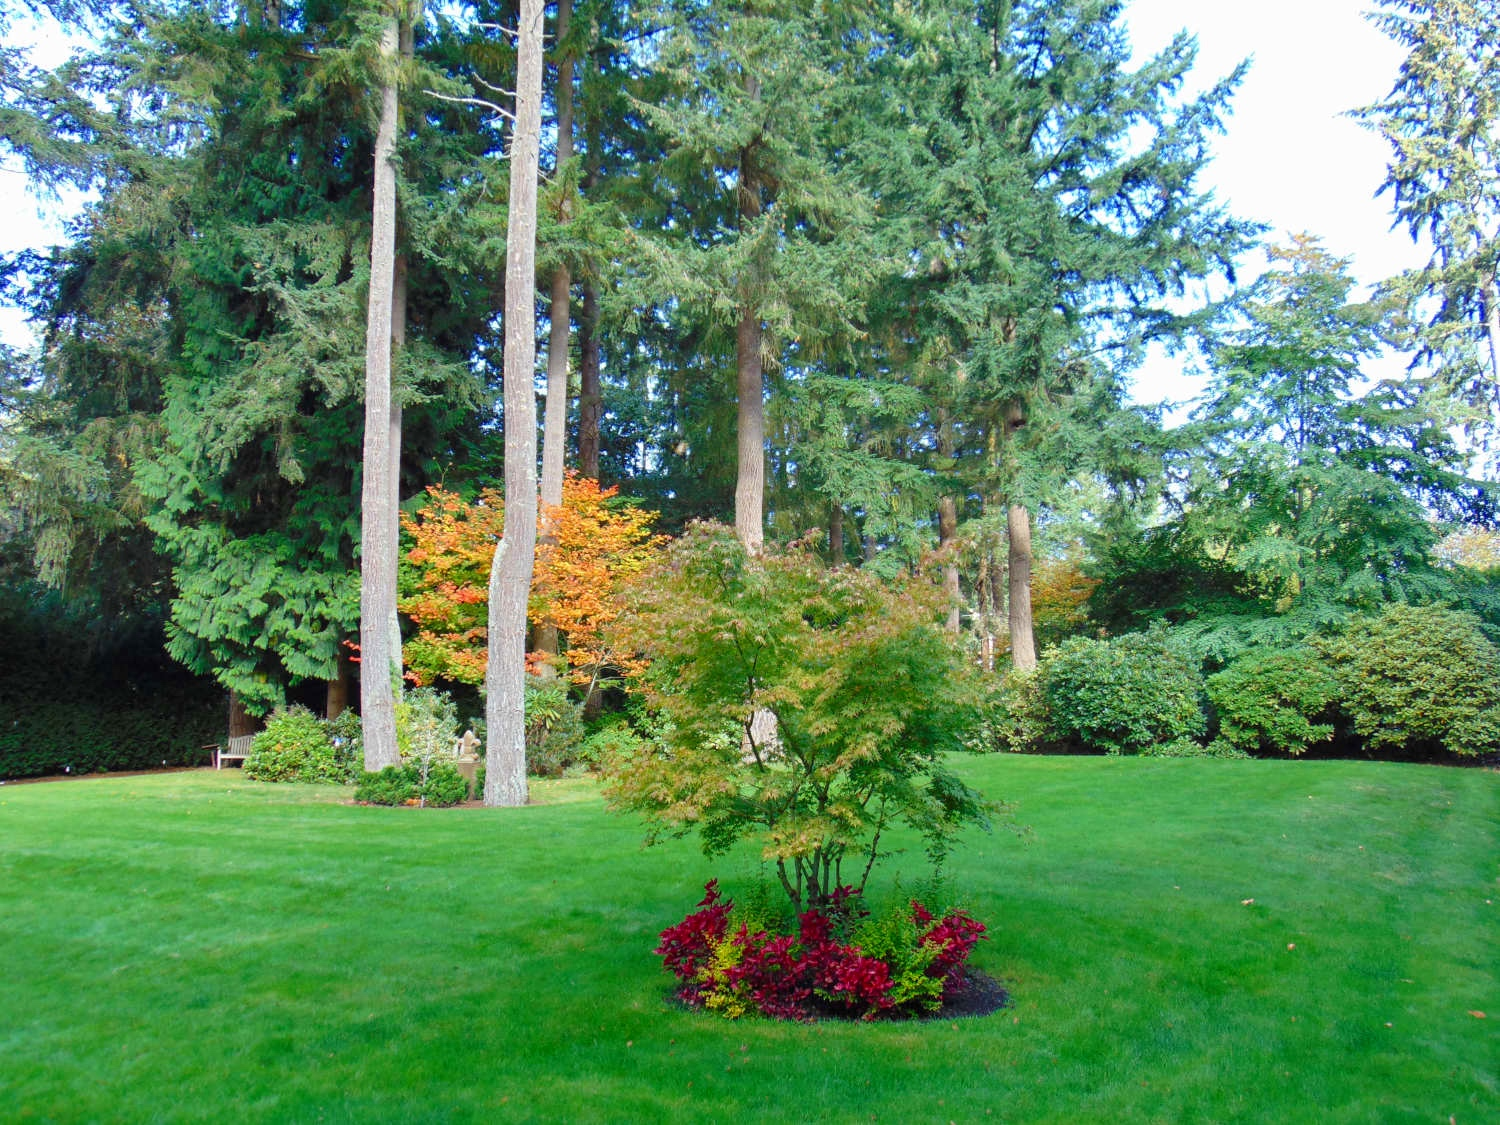 King+County+Lanscape+Design+and+Consultations+by+Jon+L+Shepodd+Landscaping.jpg